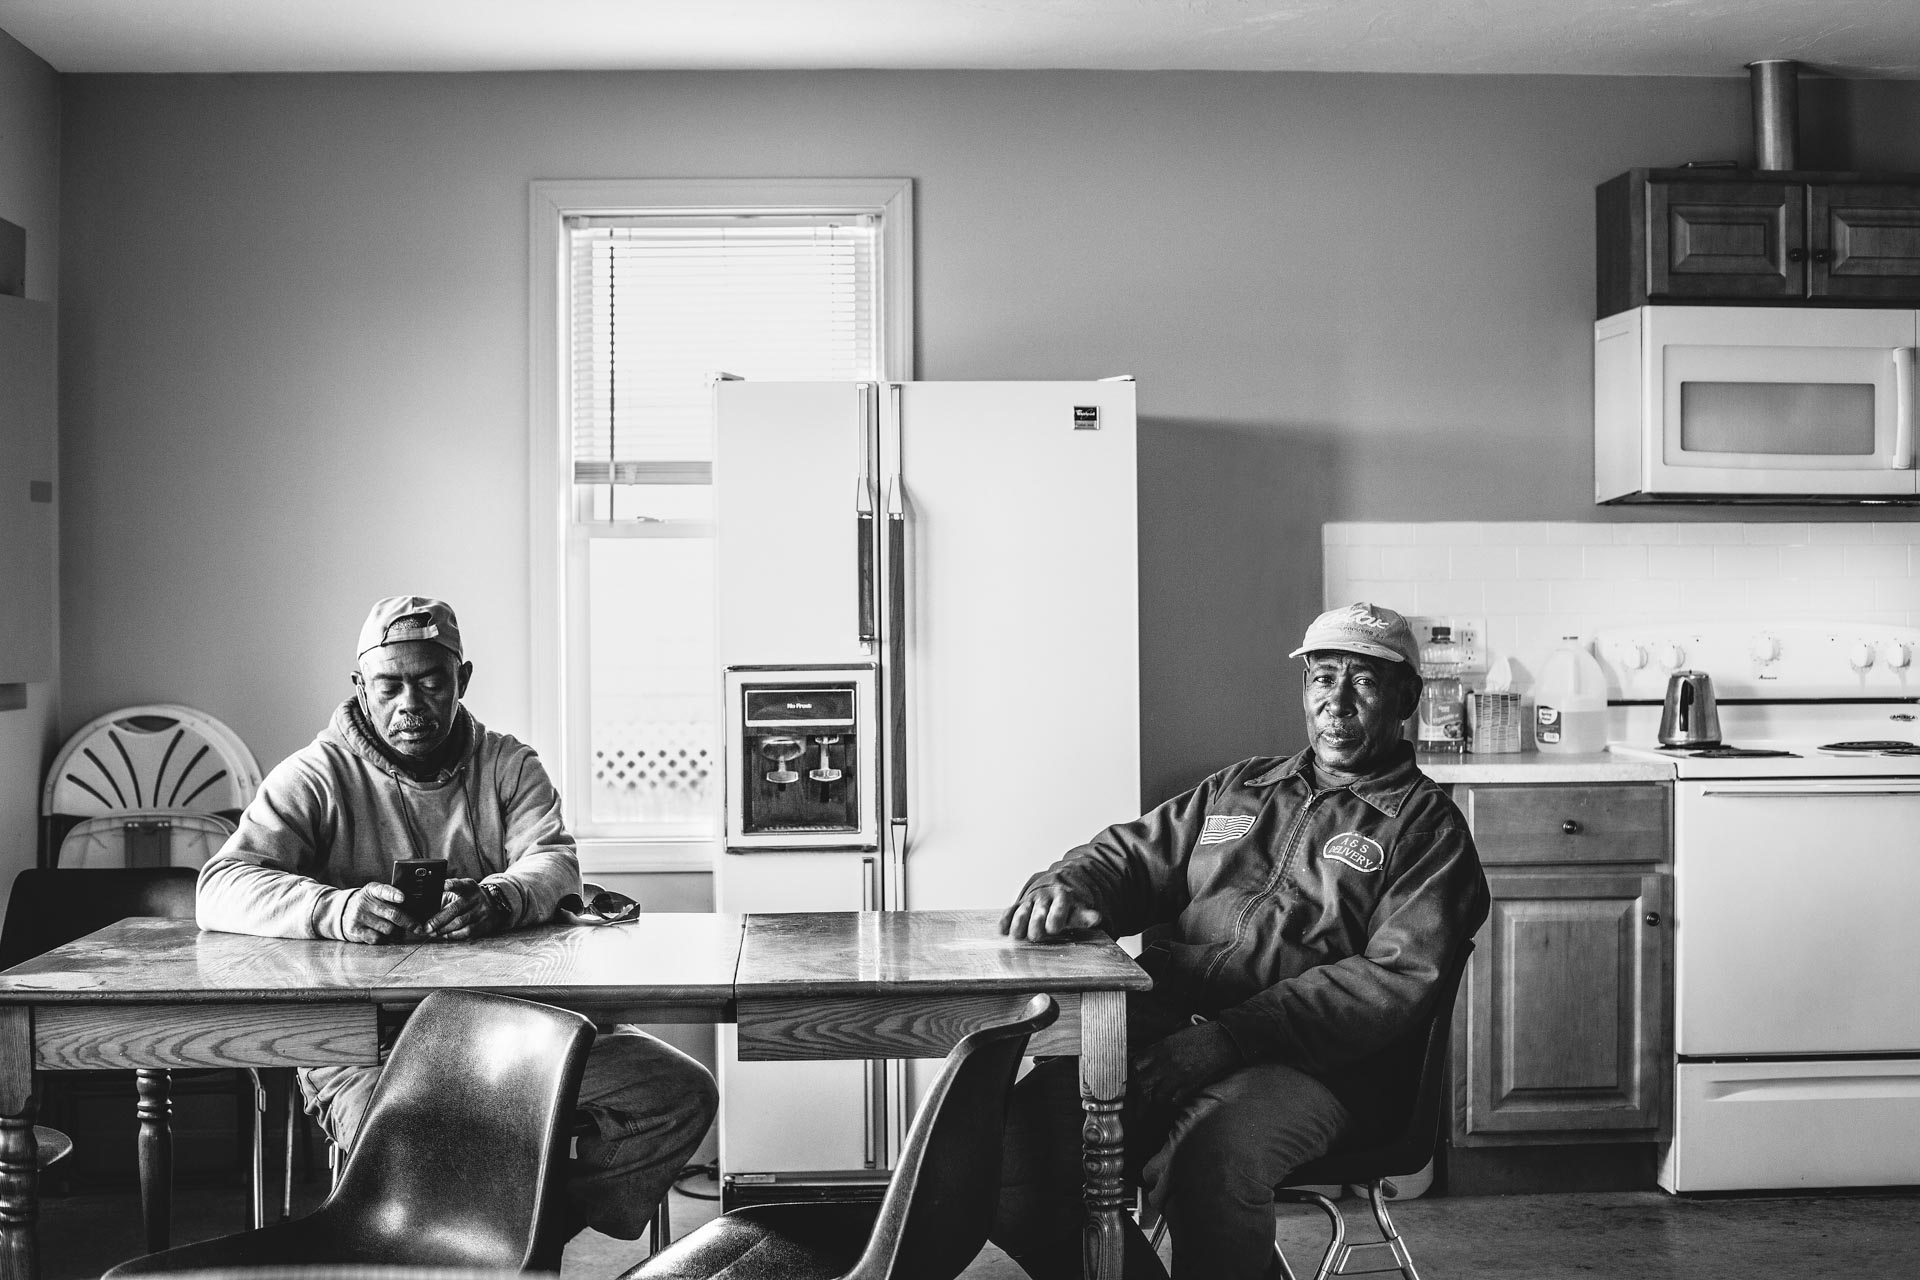 Portrait of workers on a commercial farm taking a break by editorial. Boston based photographer Adam DeTour.